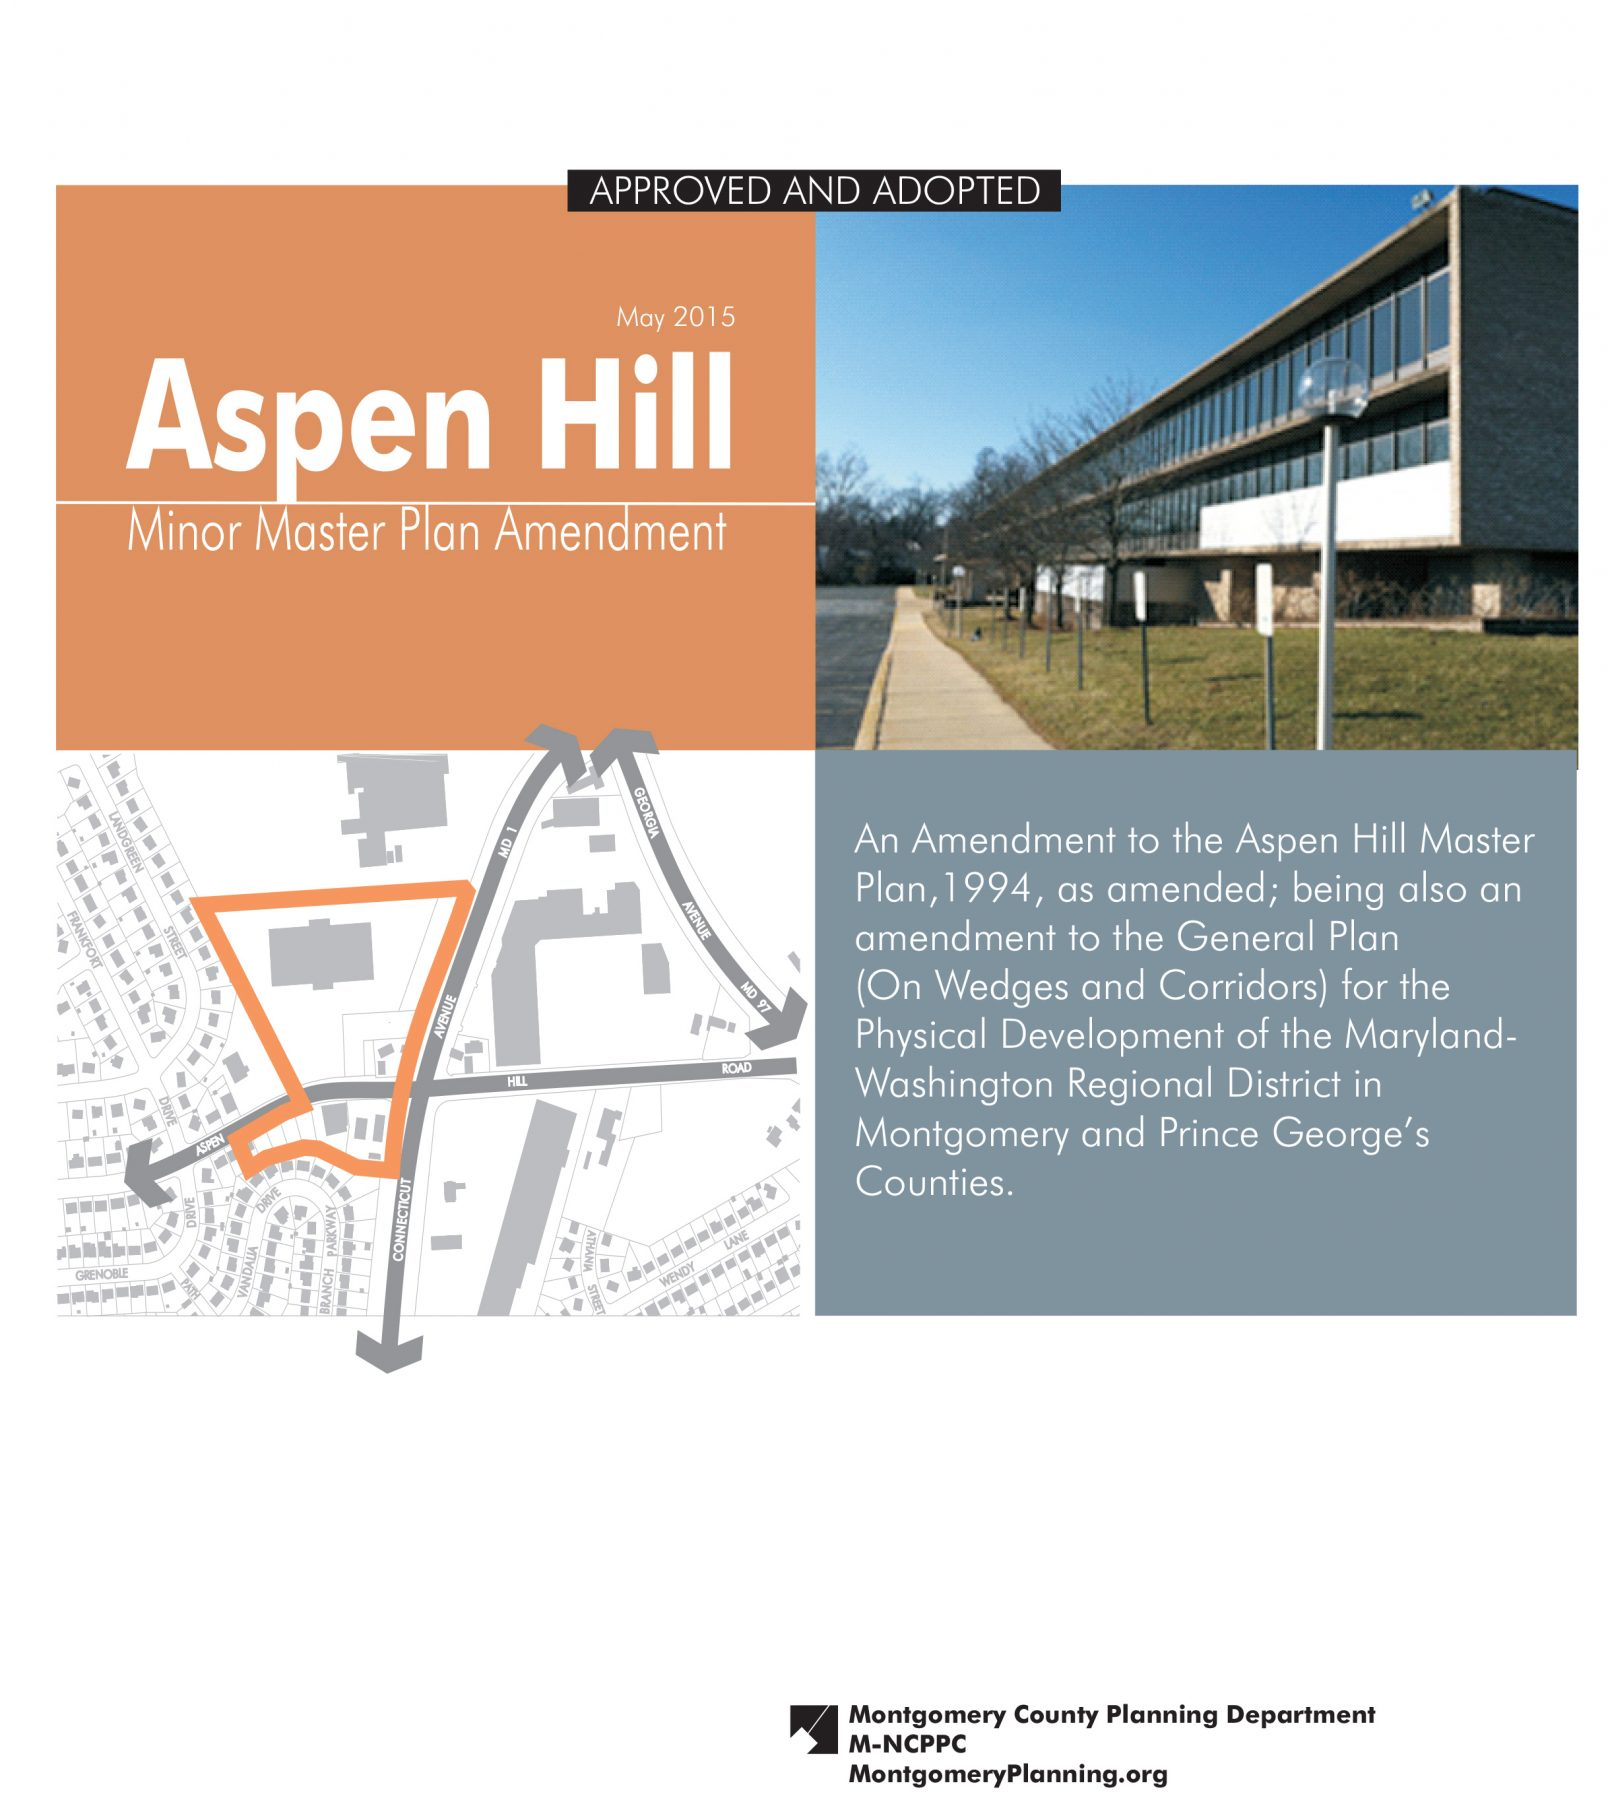 Aspen Hill Minor Master Plan